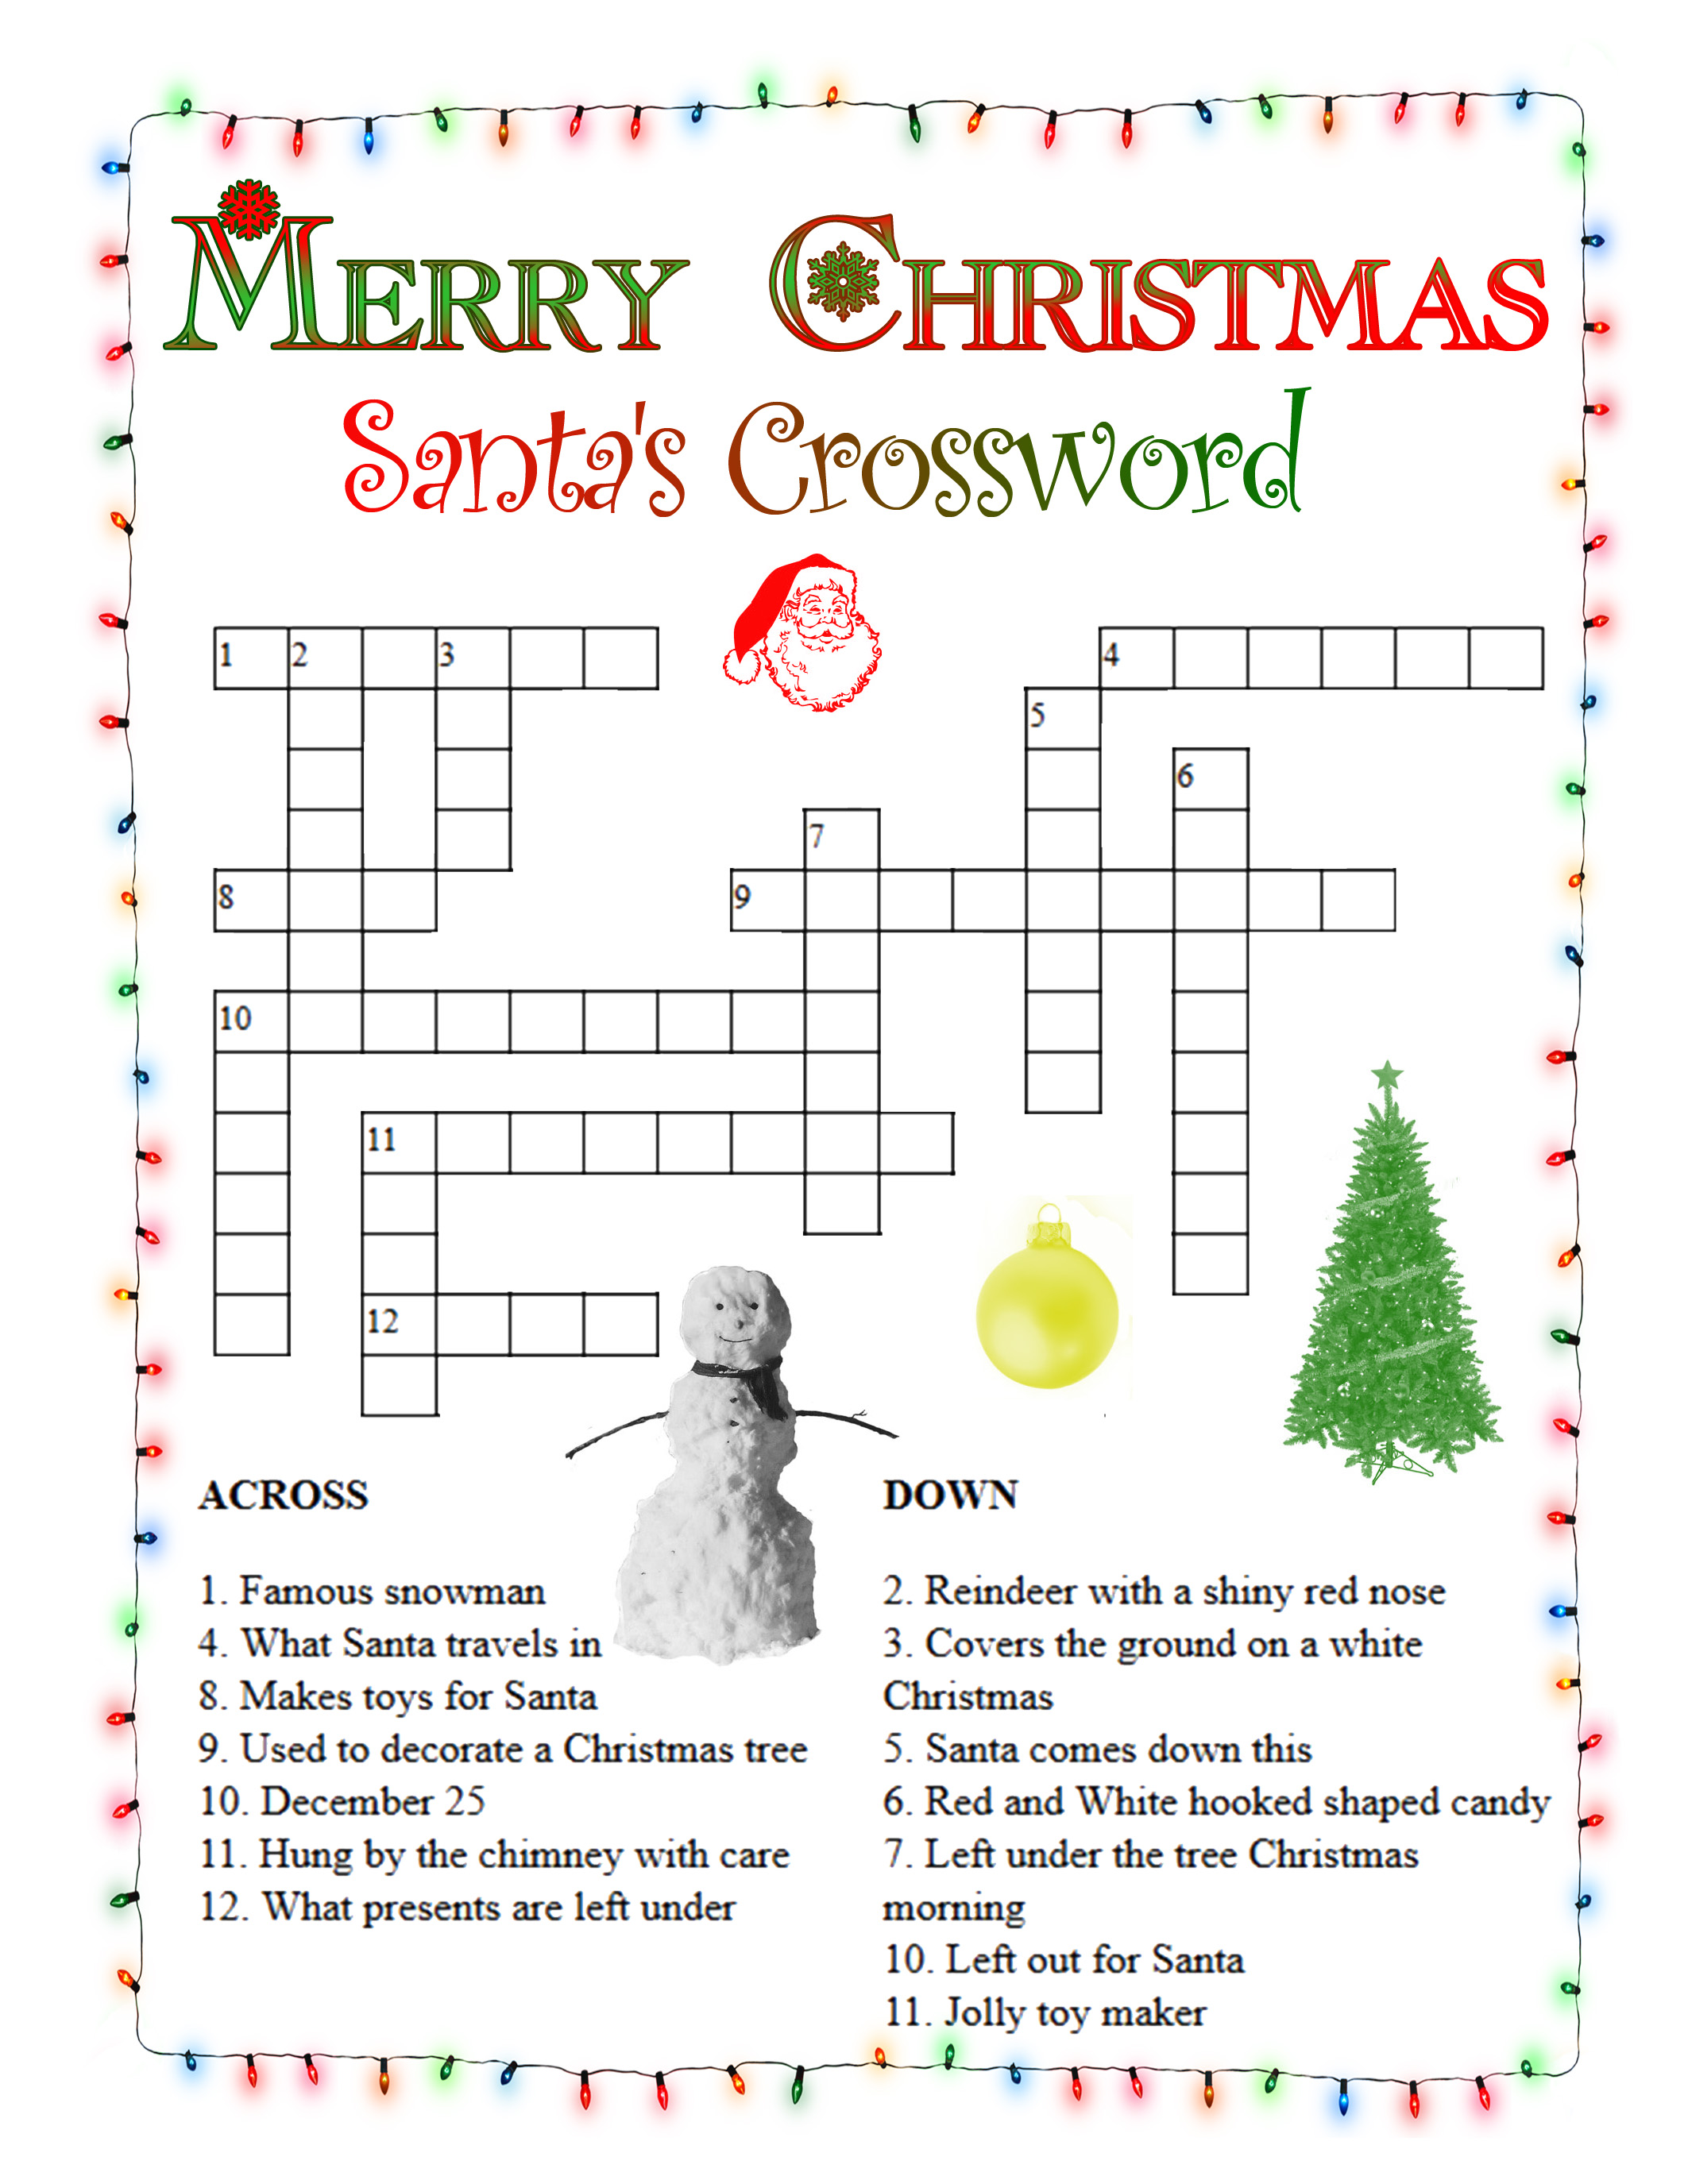 Selective image with regard to christmas crossword puzzles printable